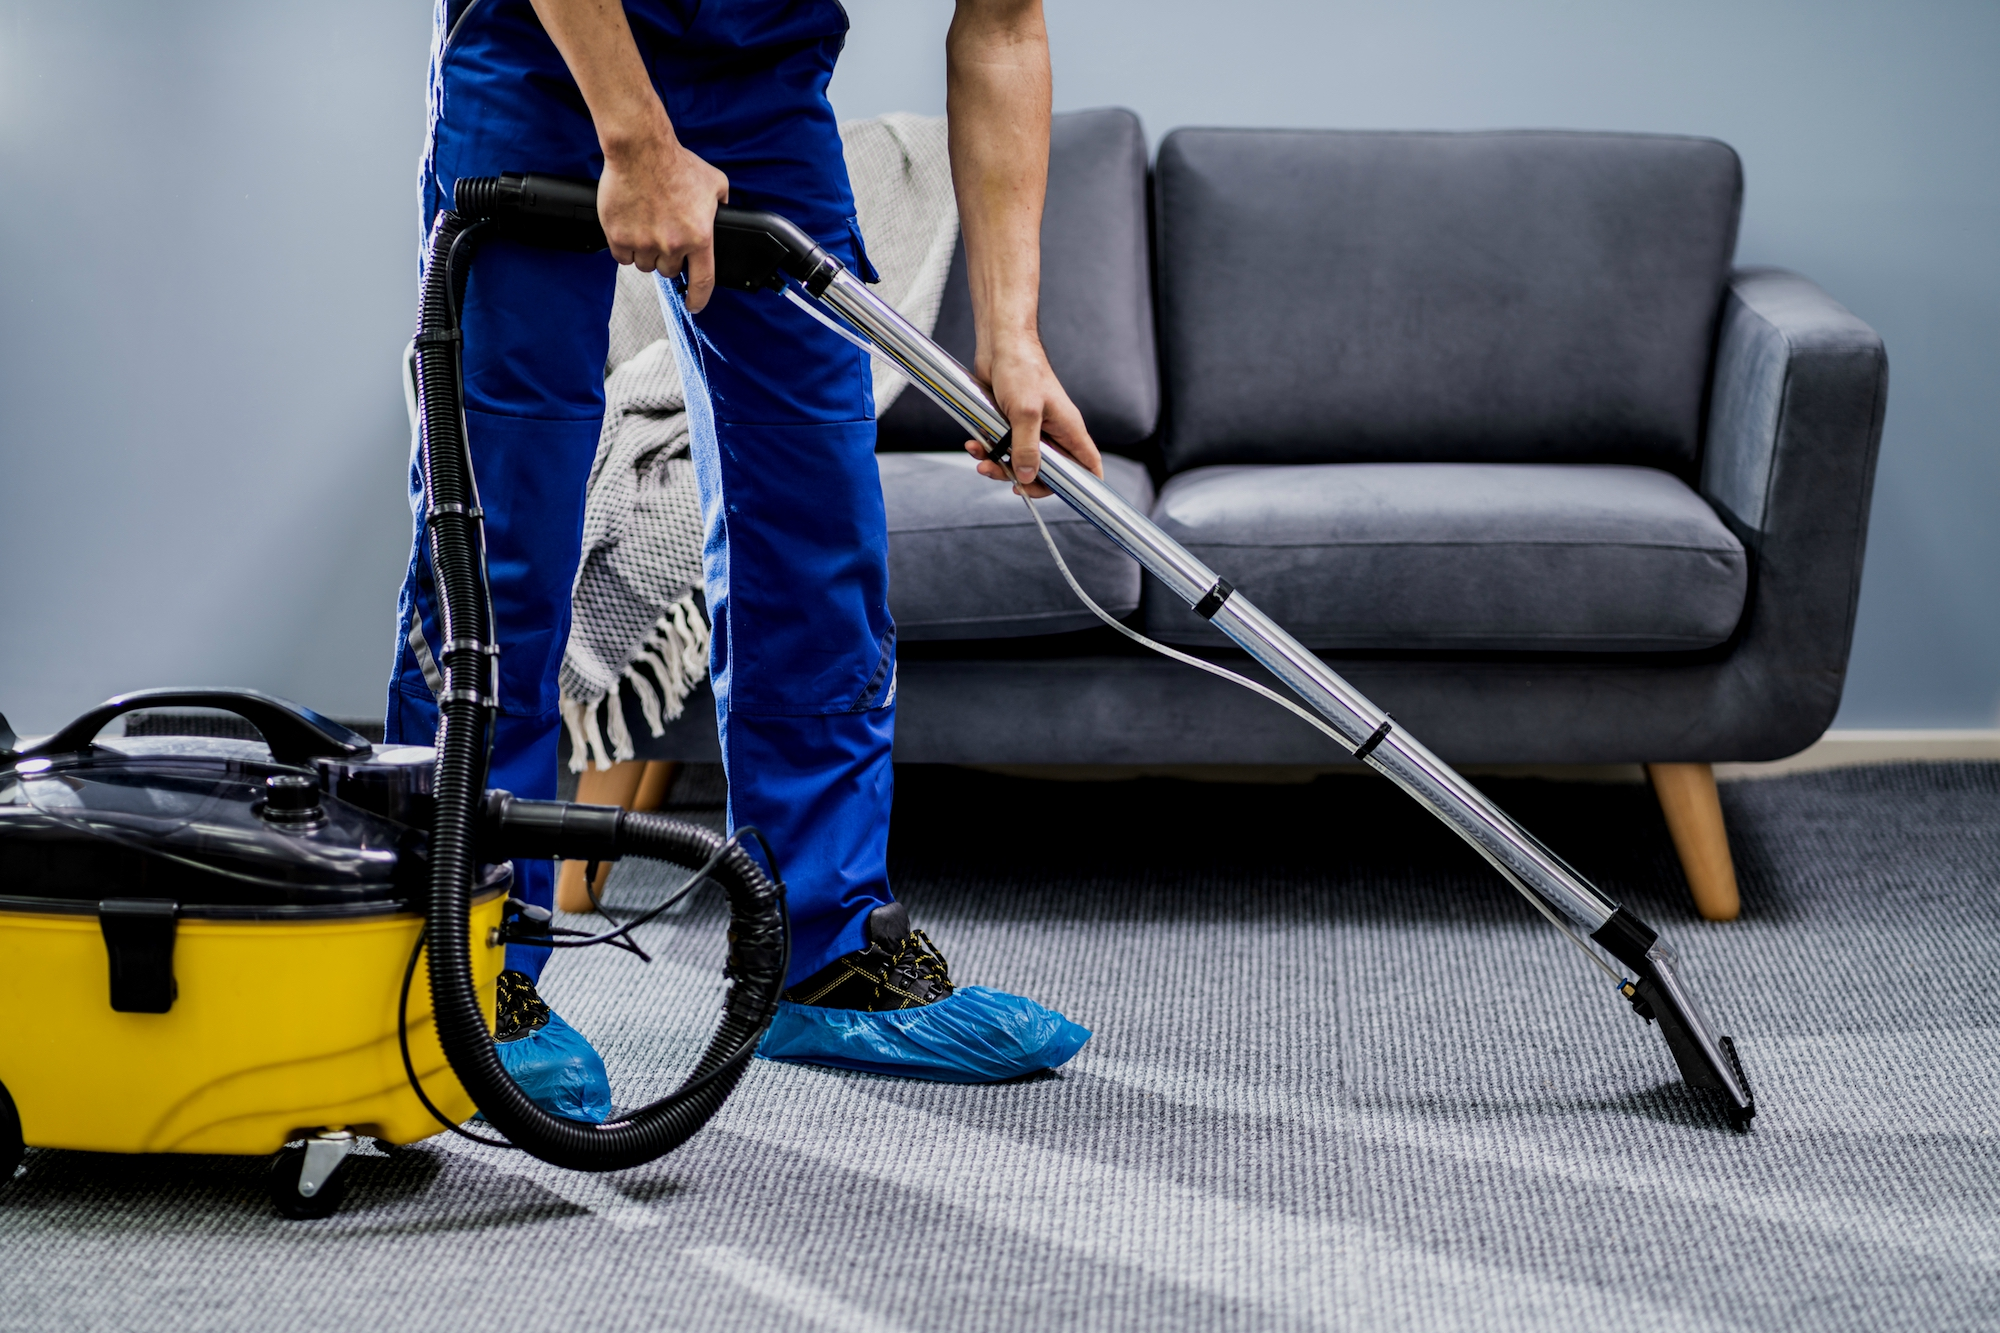 Carpet & Tile Cleaning Services